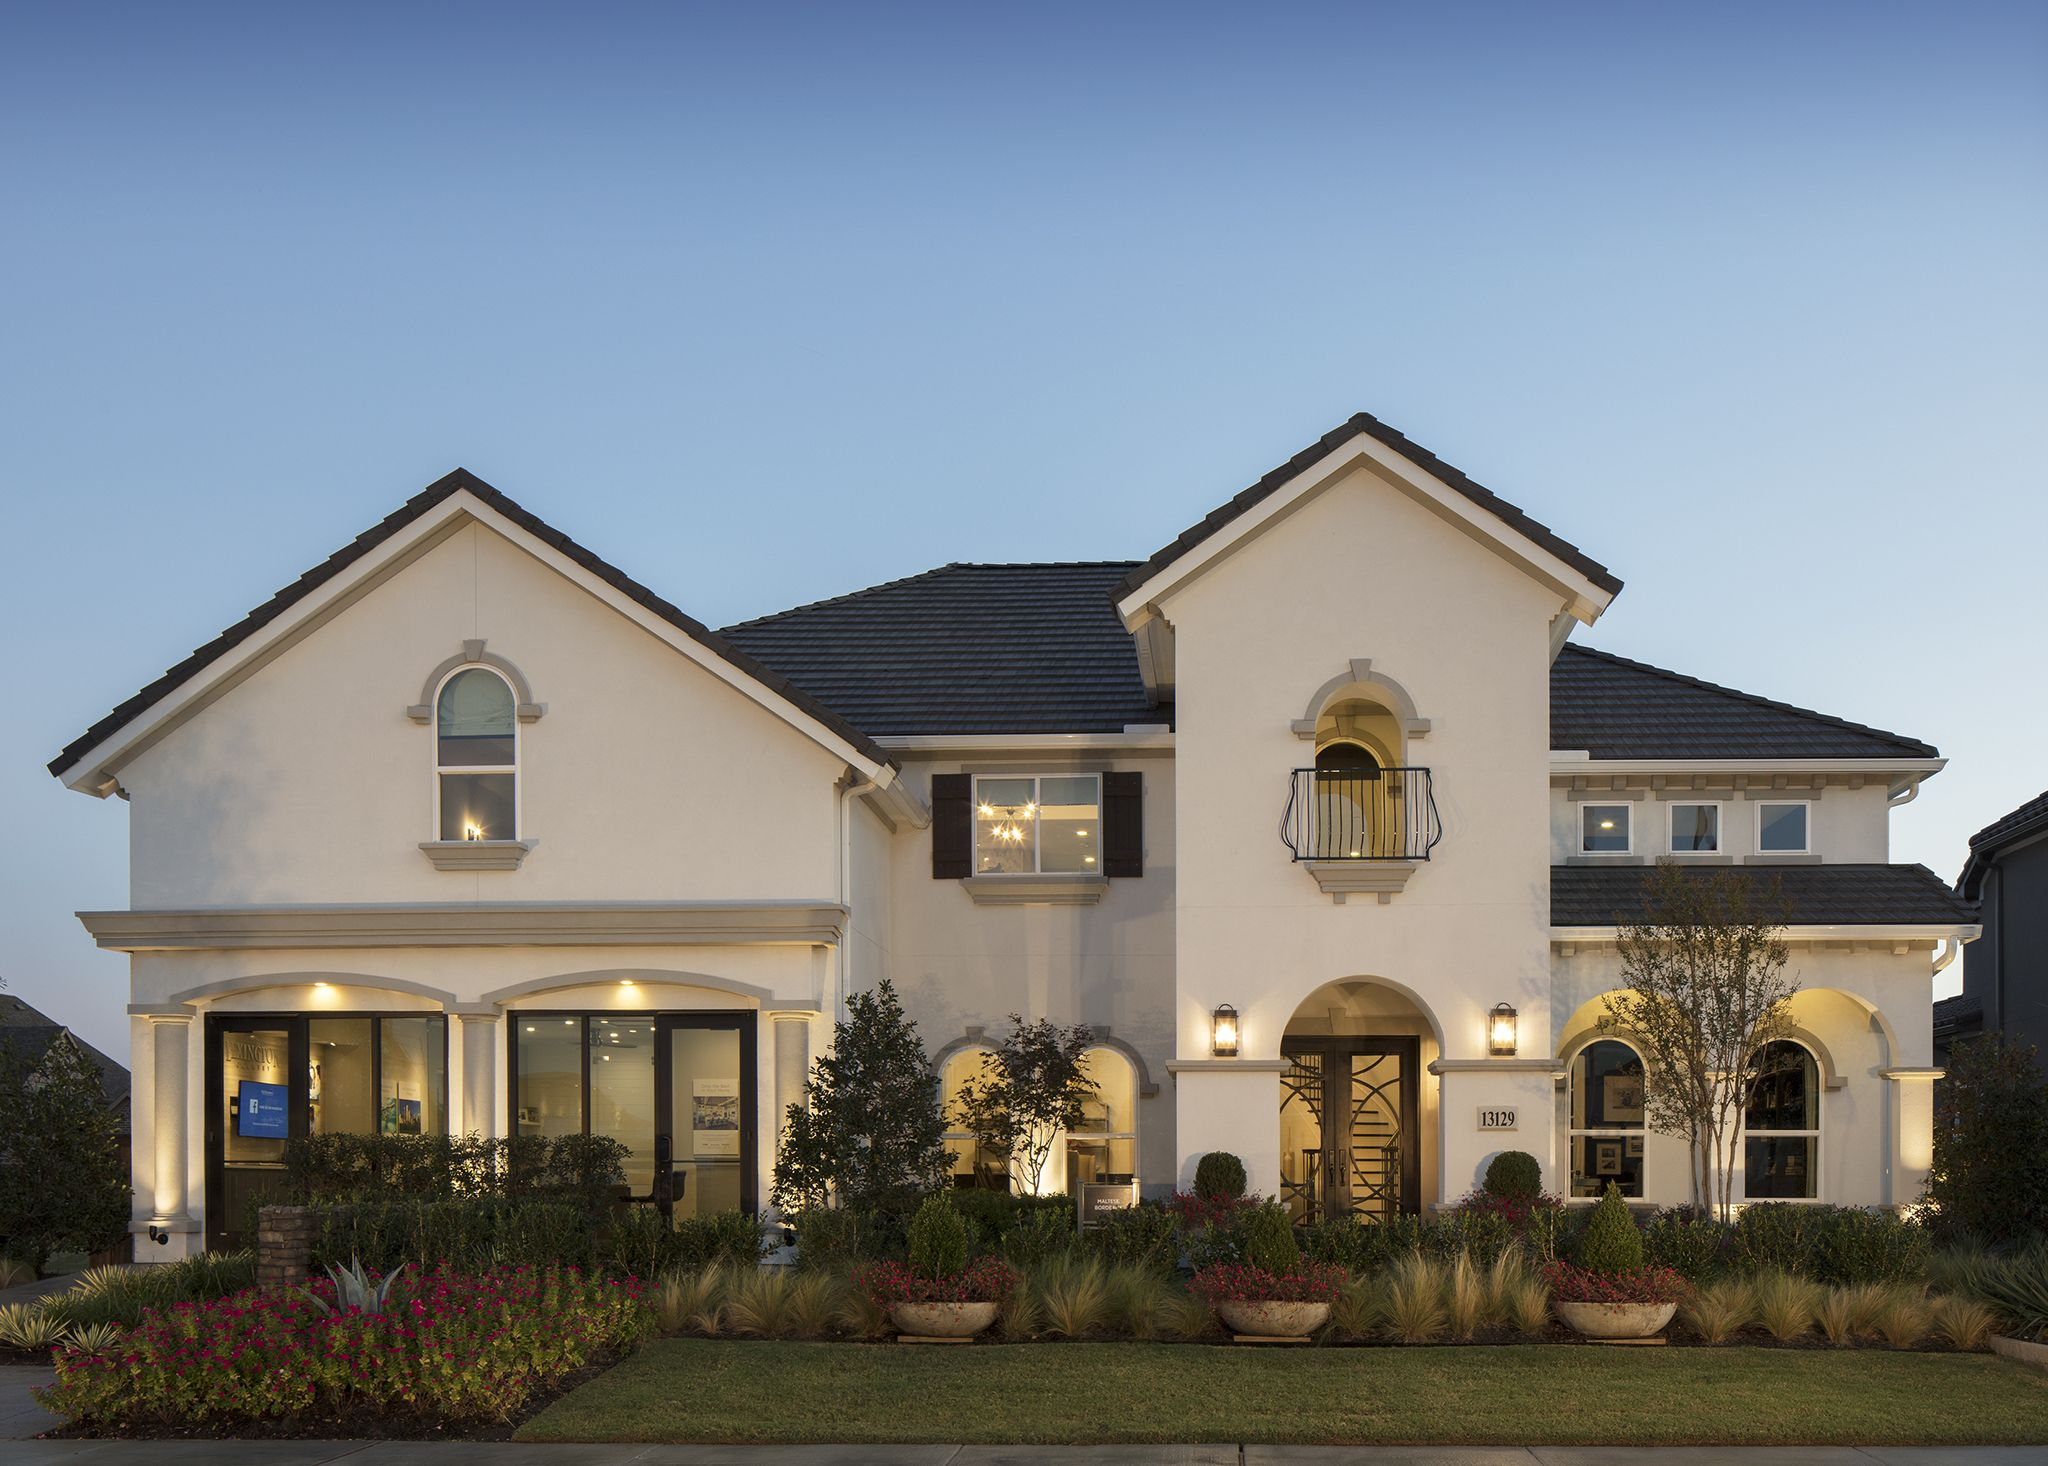 Today's FeatureFriday showcases Toll Brothers Lexington